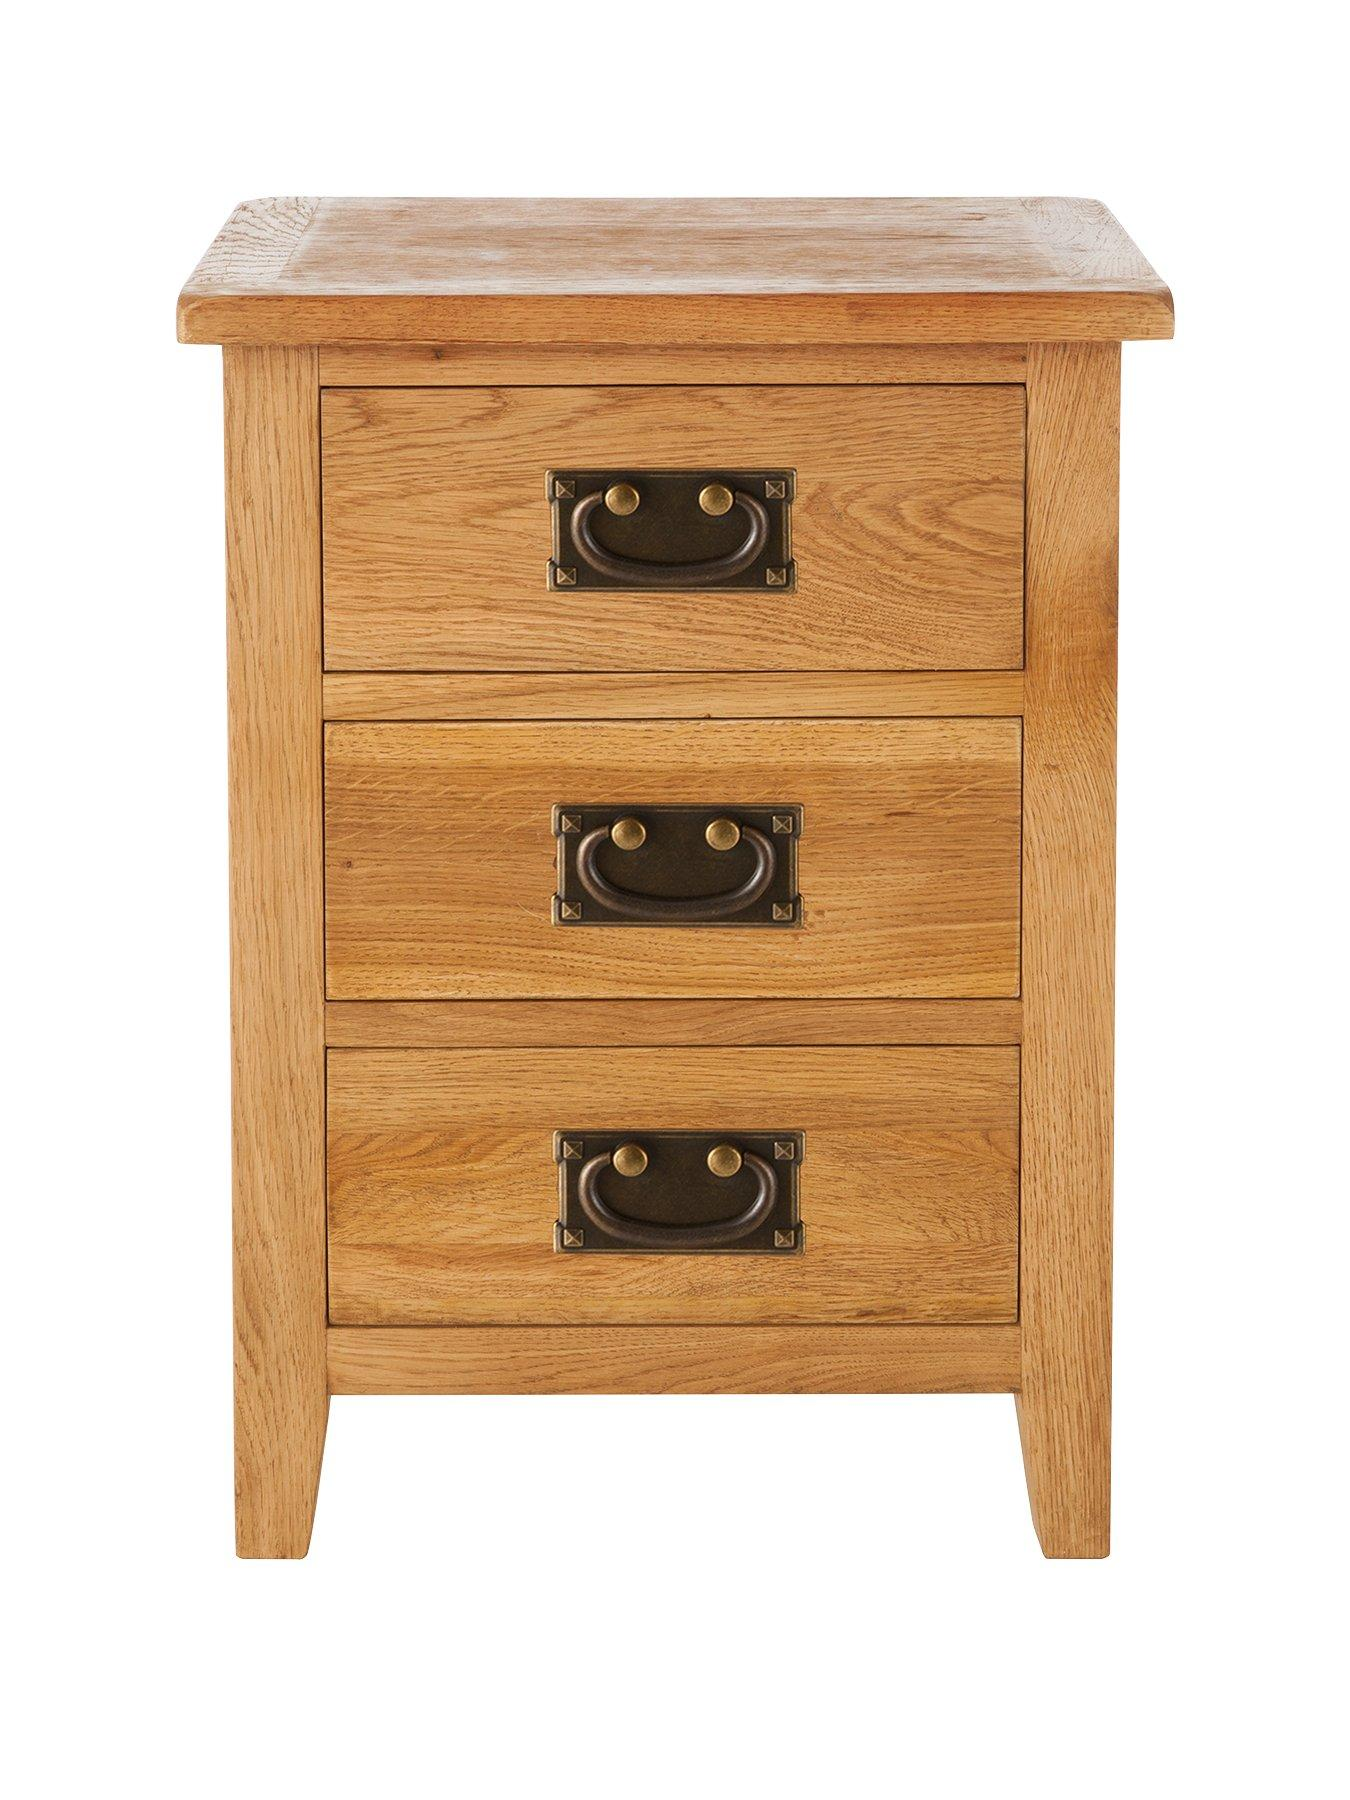 London Ready Assembled 3 Drawer Oak Bedside Cabinet